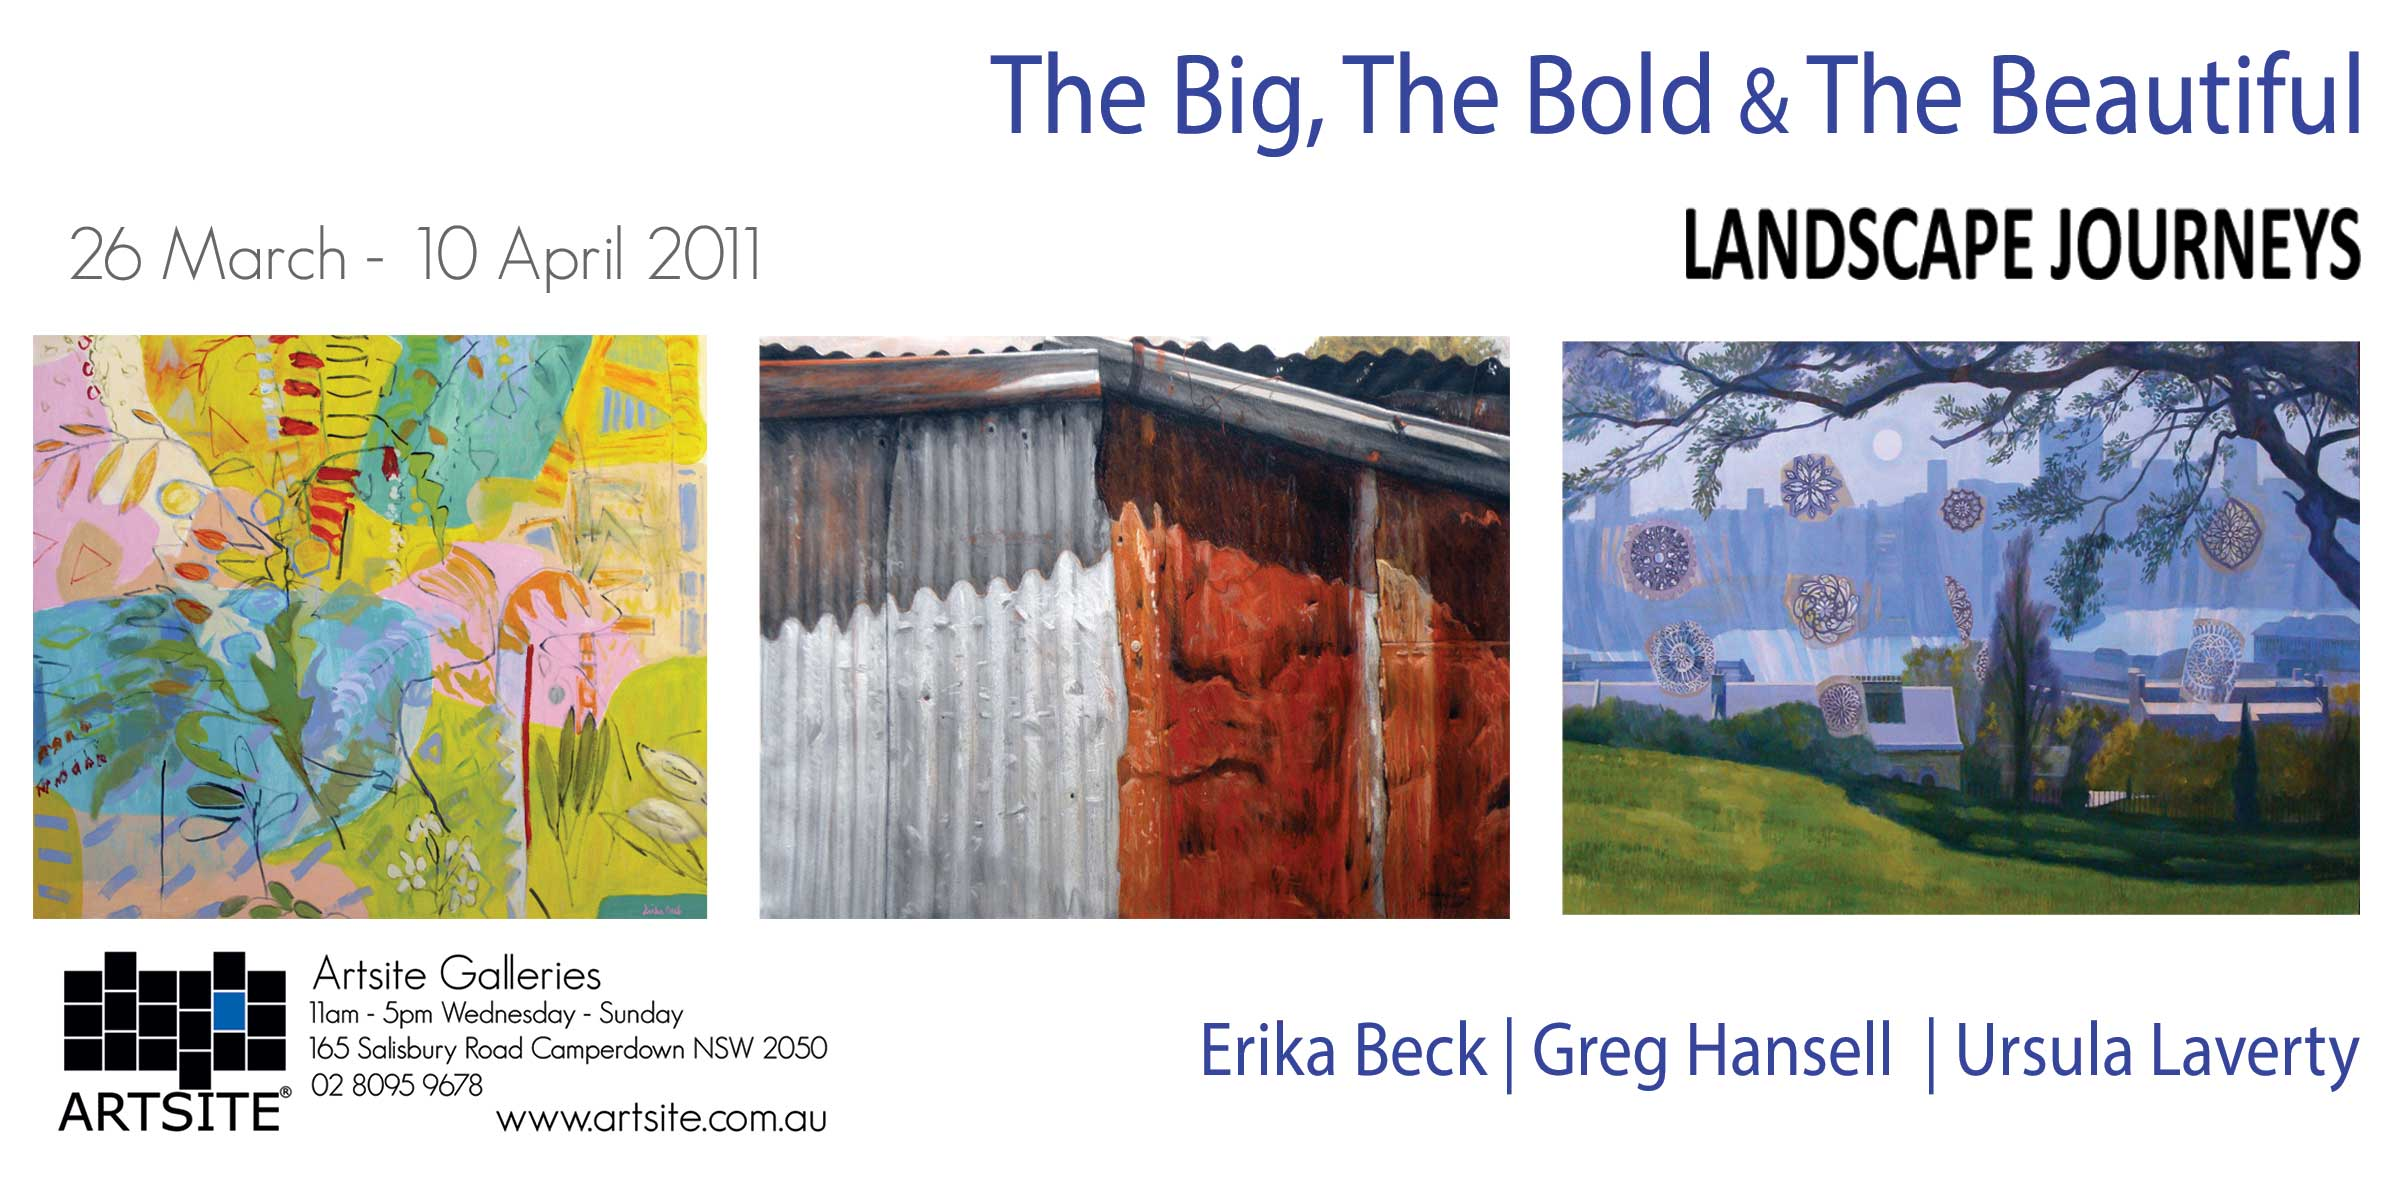 The Big, The Bold & The Beautiful: Landscape Journeys. Erika Beck | Greg Hansell | Ursula Laverty  Artsite Gallery. 26 March - 10 April 2011